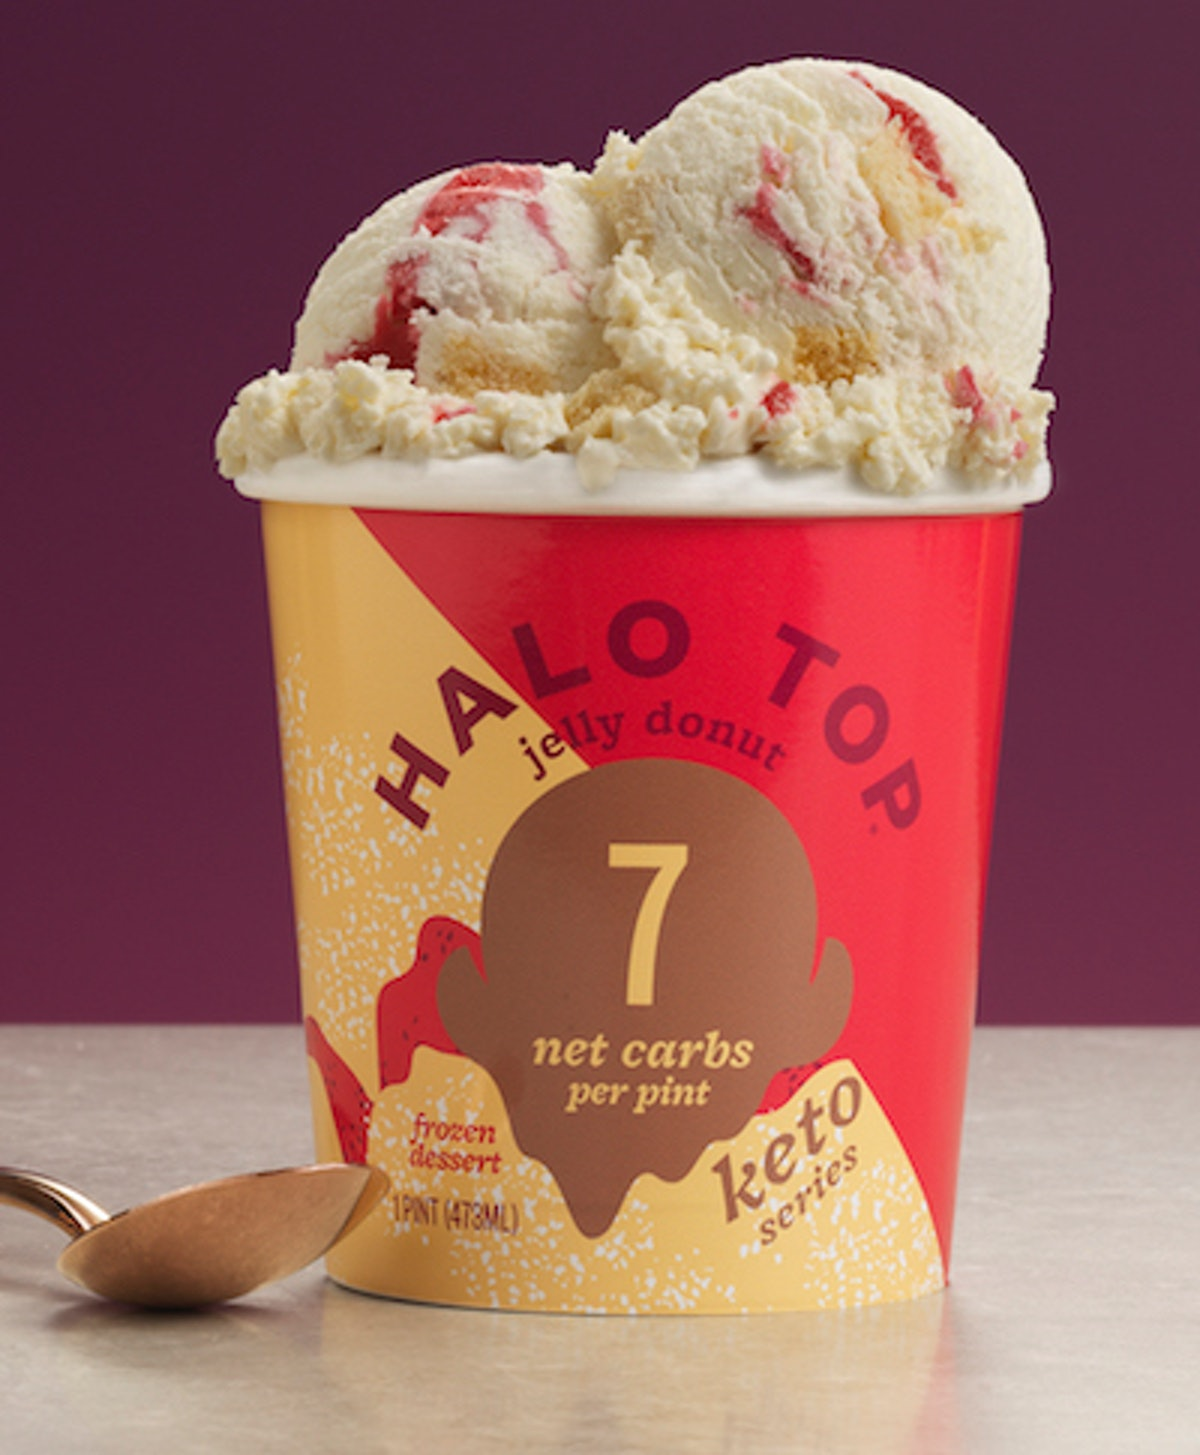 Halo Top released seven new ice cream flavors for 2020.